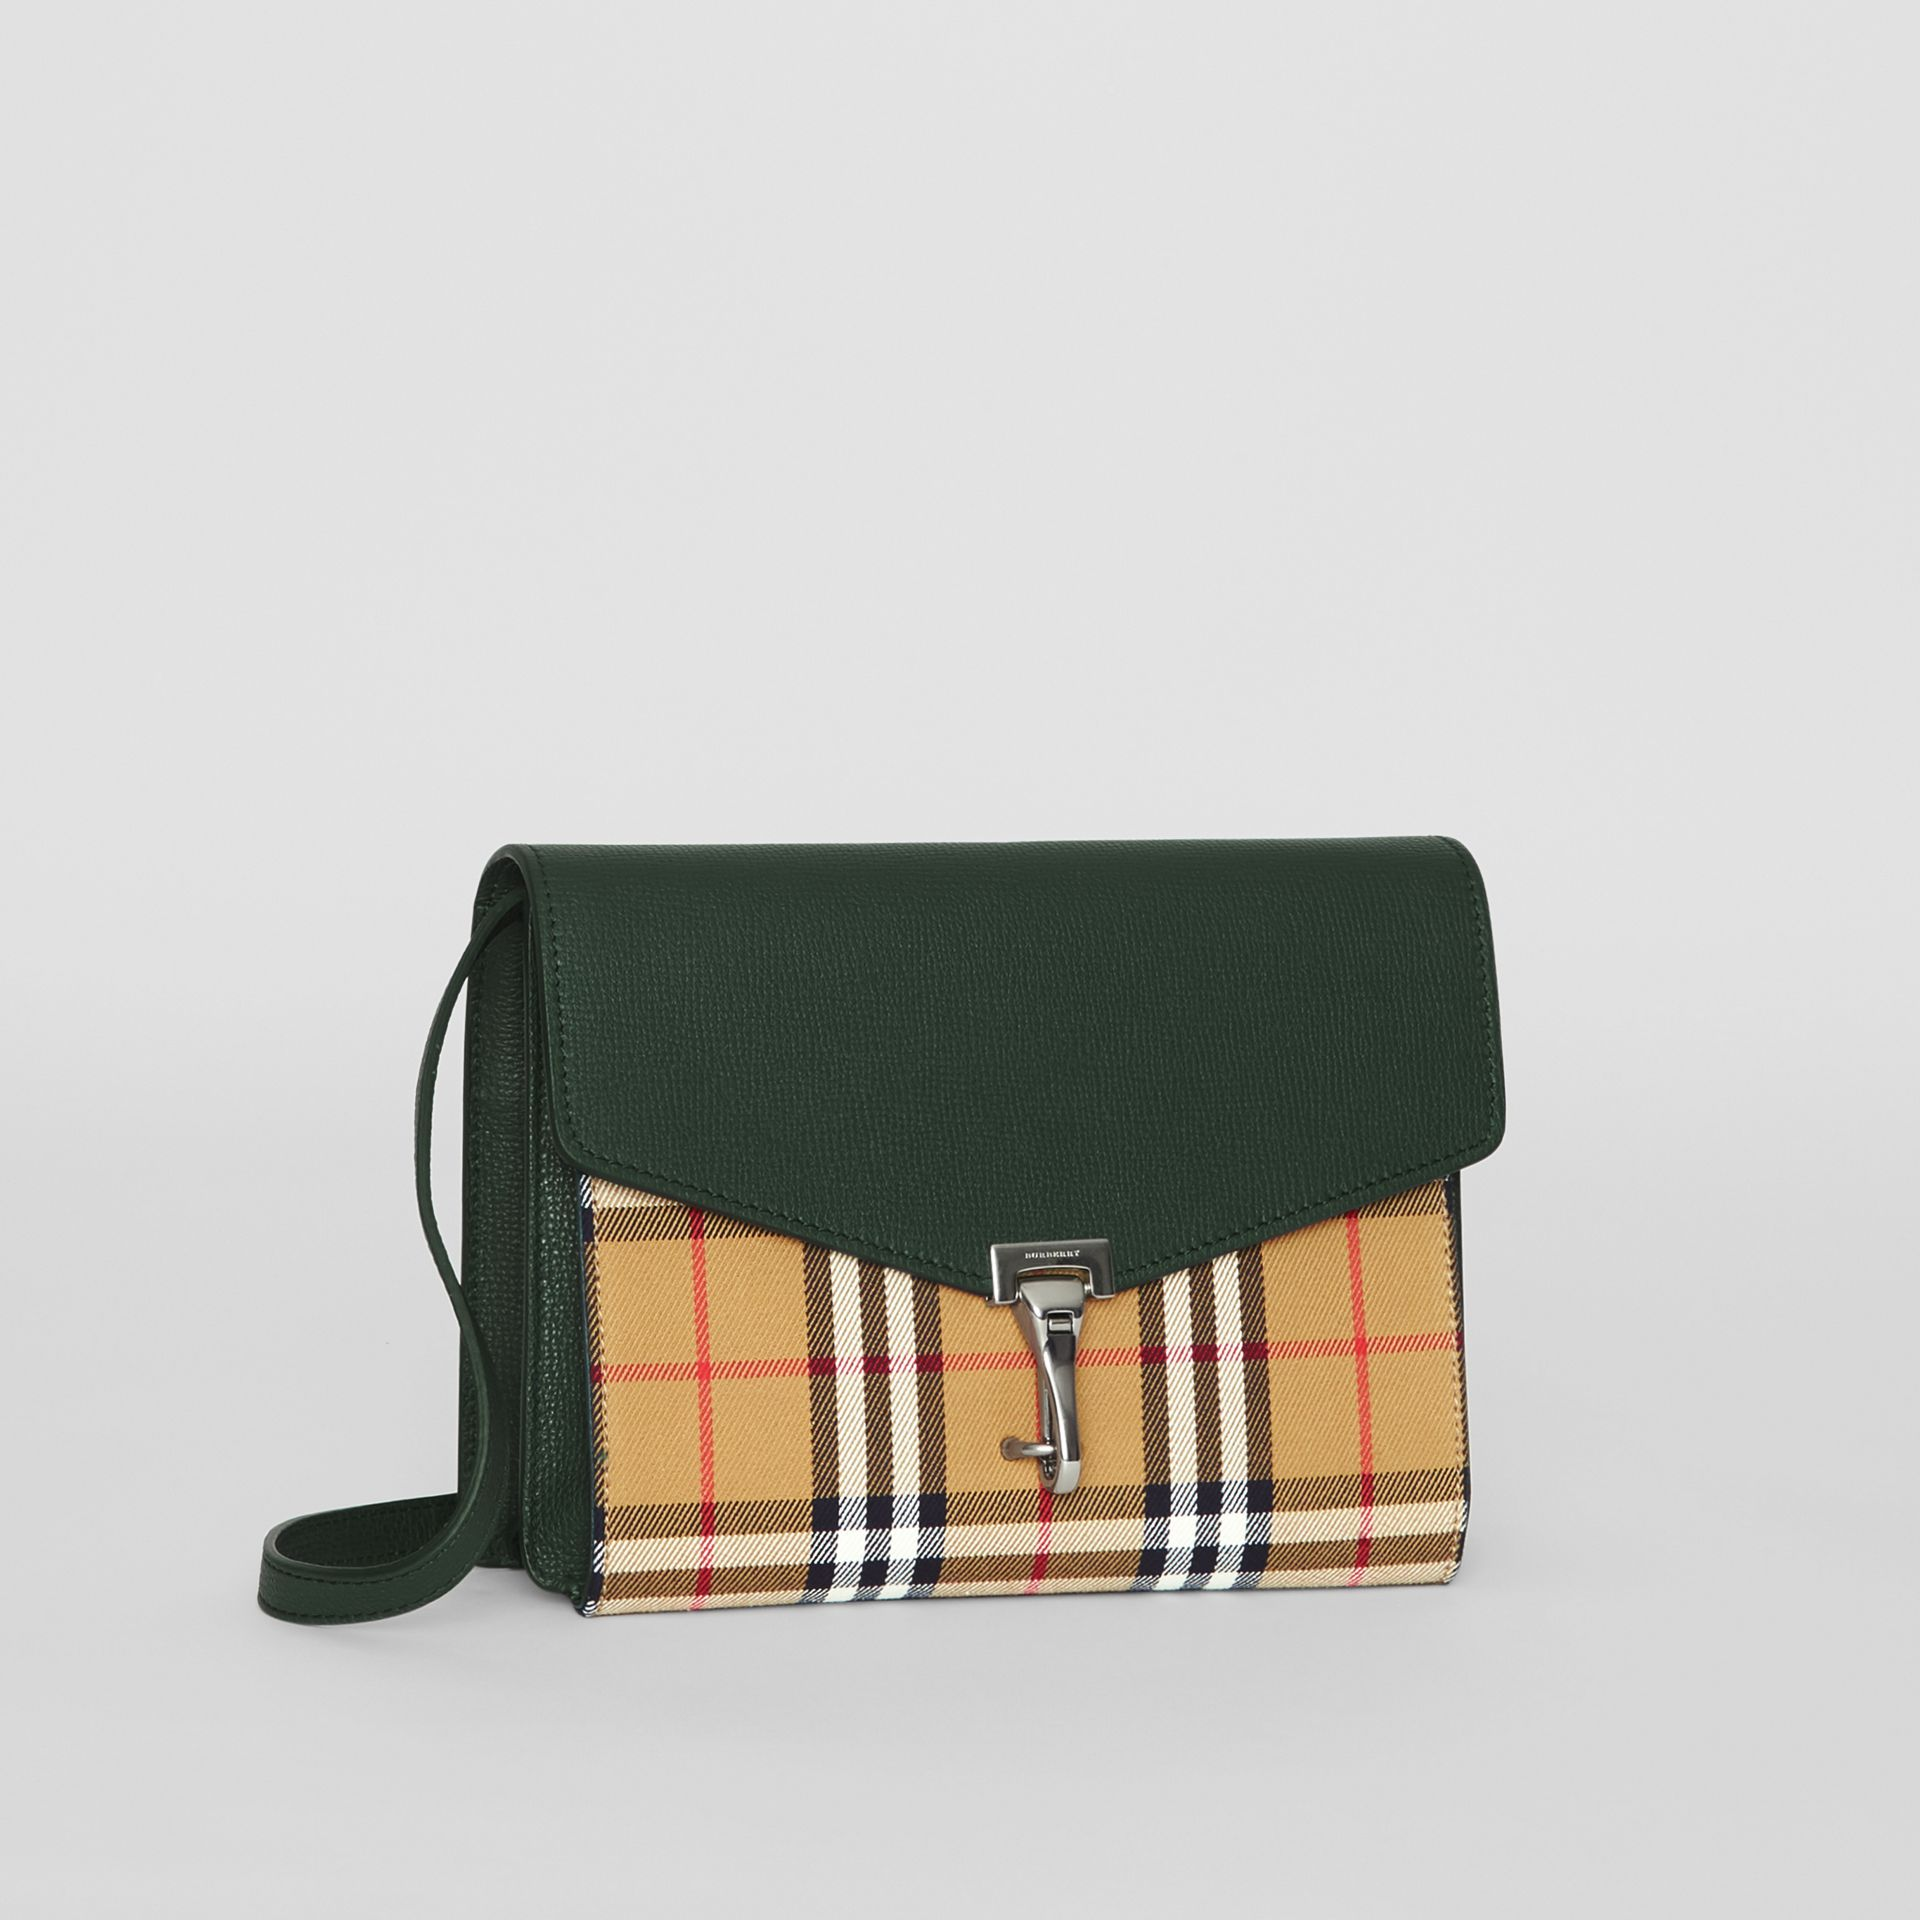 Small Vintage Check and Leather Crossbody Bag in Green - Women | Burberry Singapore - gallery image 6